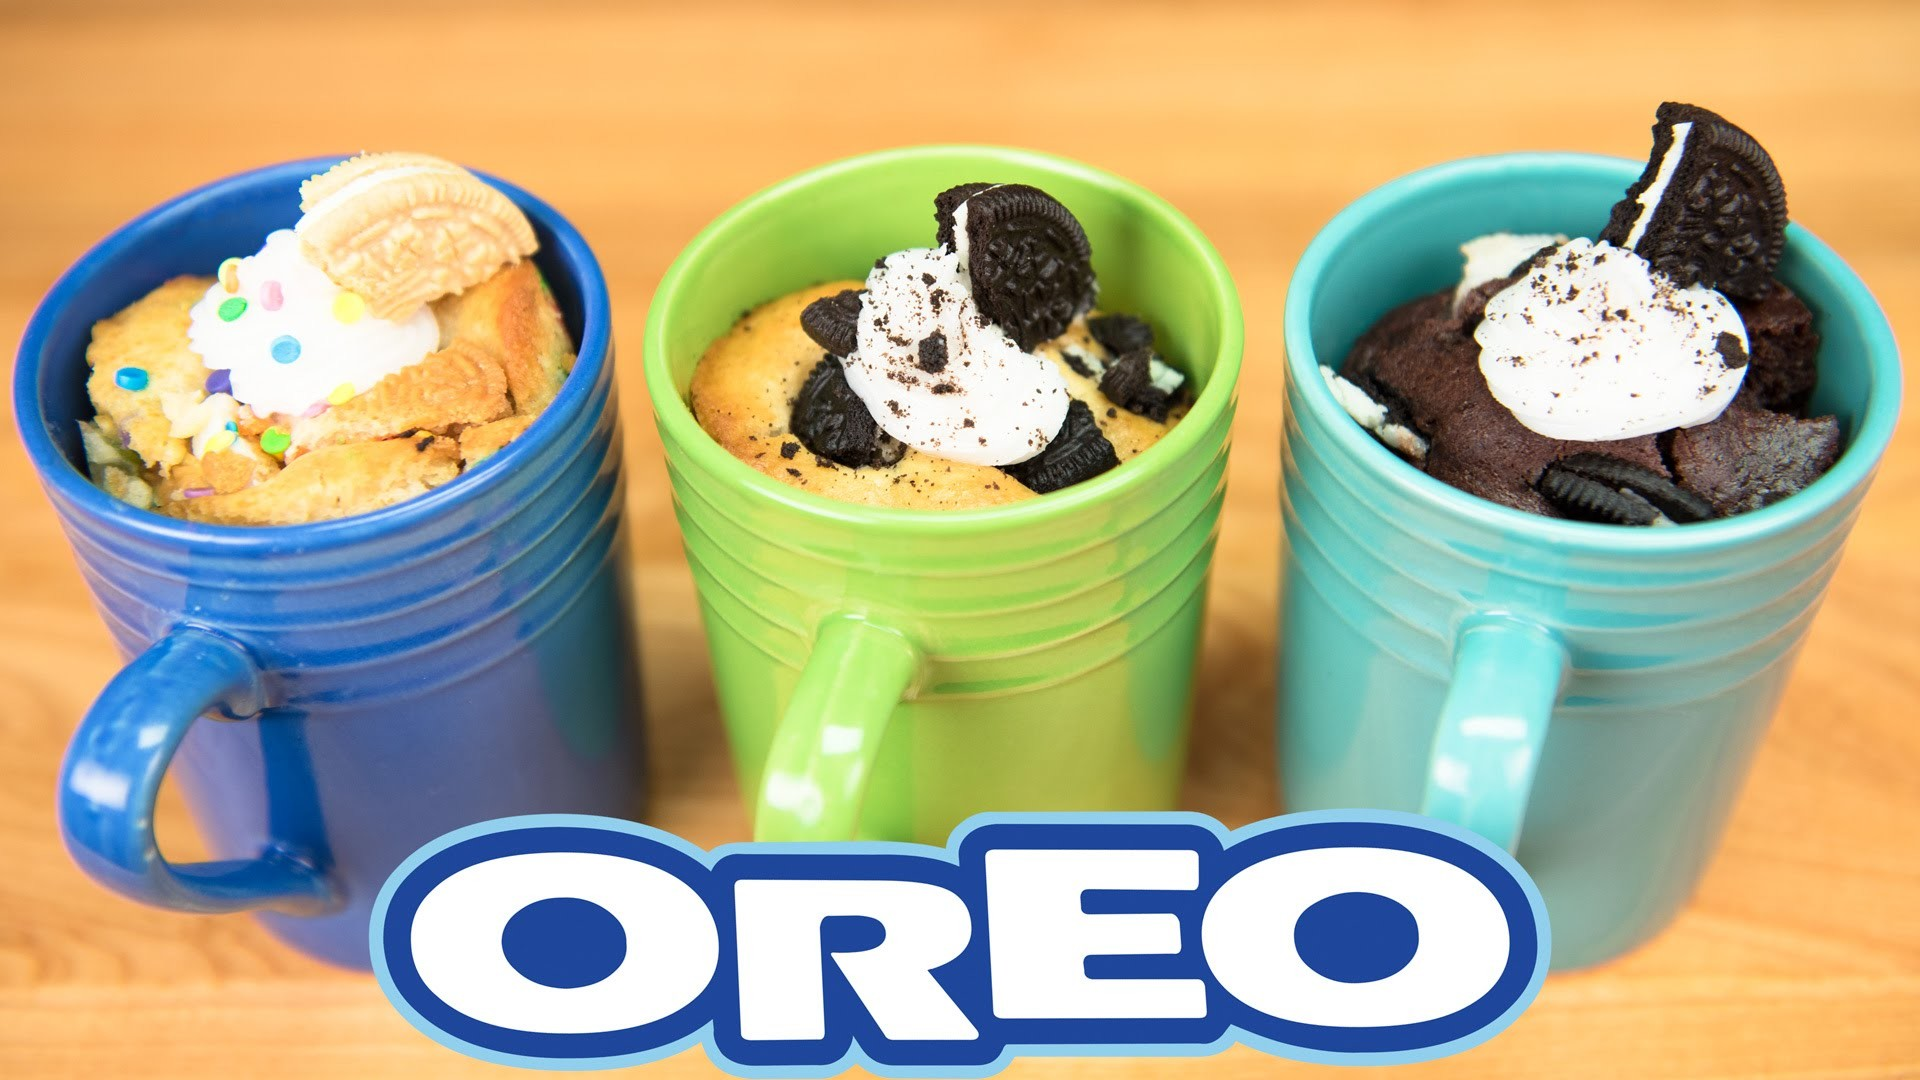 Oreo Mug Cakes (Chocolate Oreo Cake, Cookies & Cream Cake, Funfetti Oreo Cake): Backpack Baking